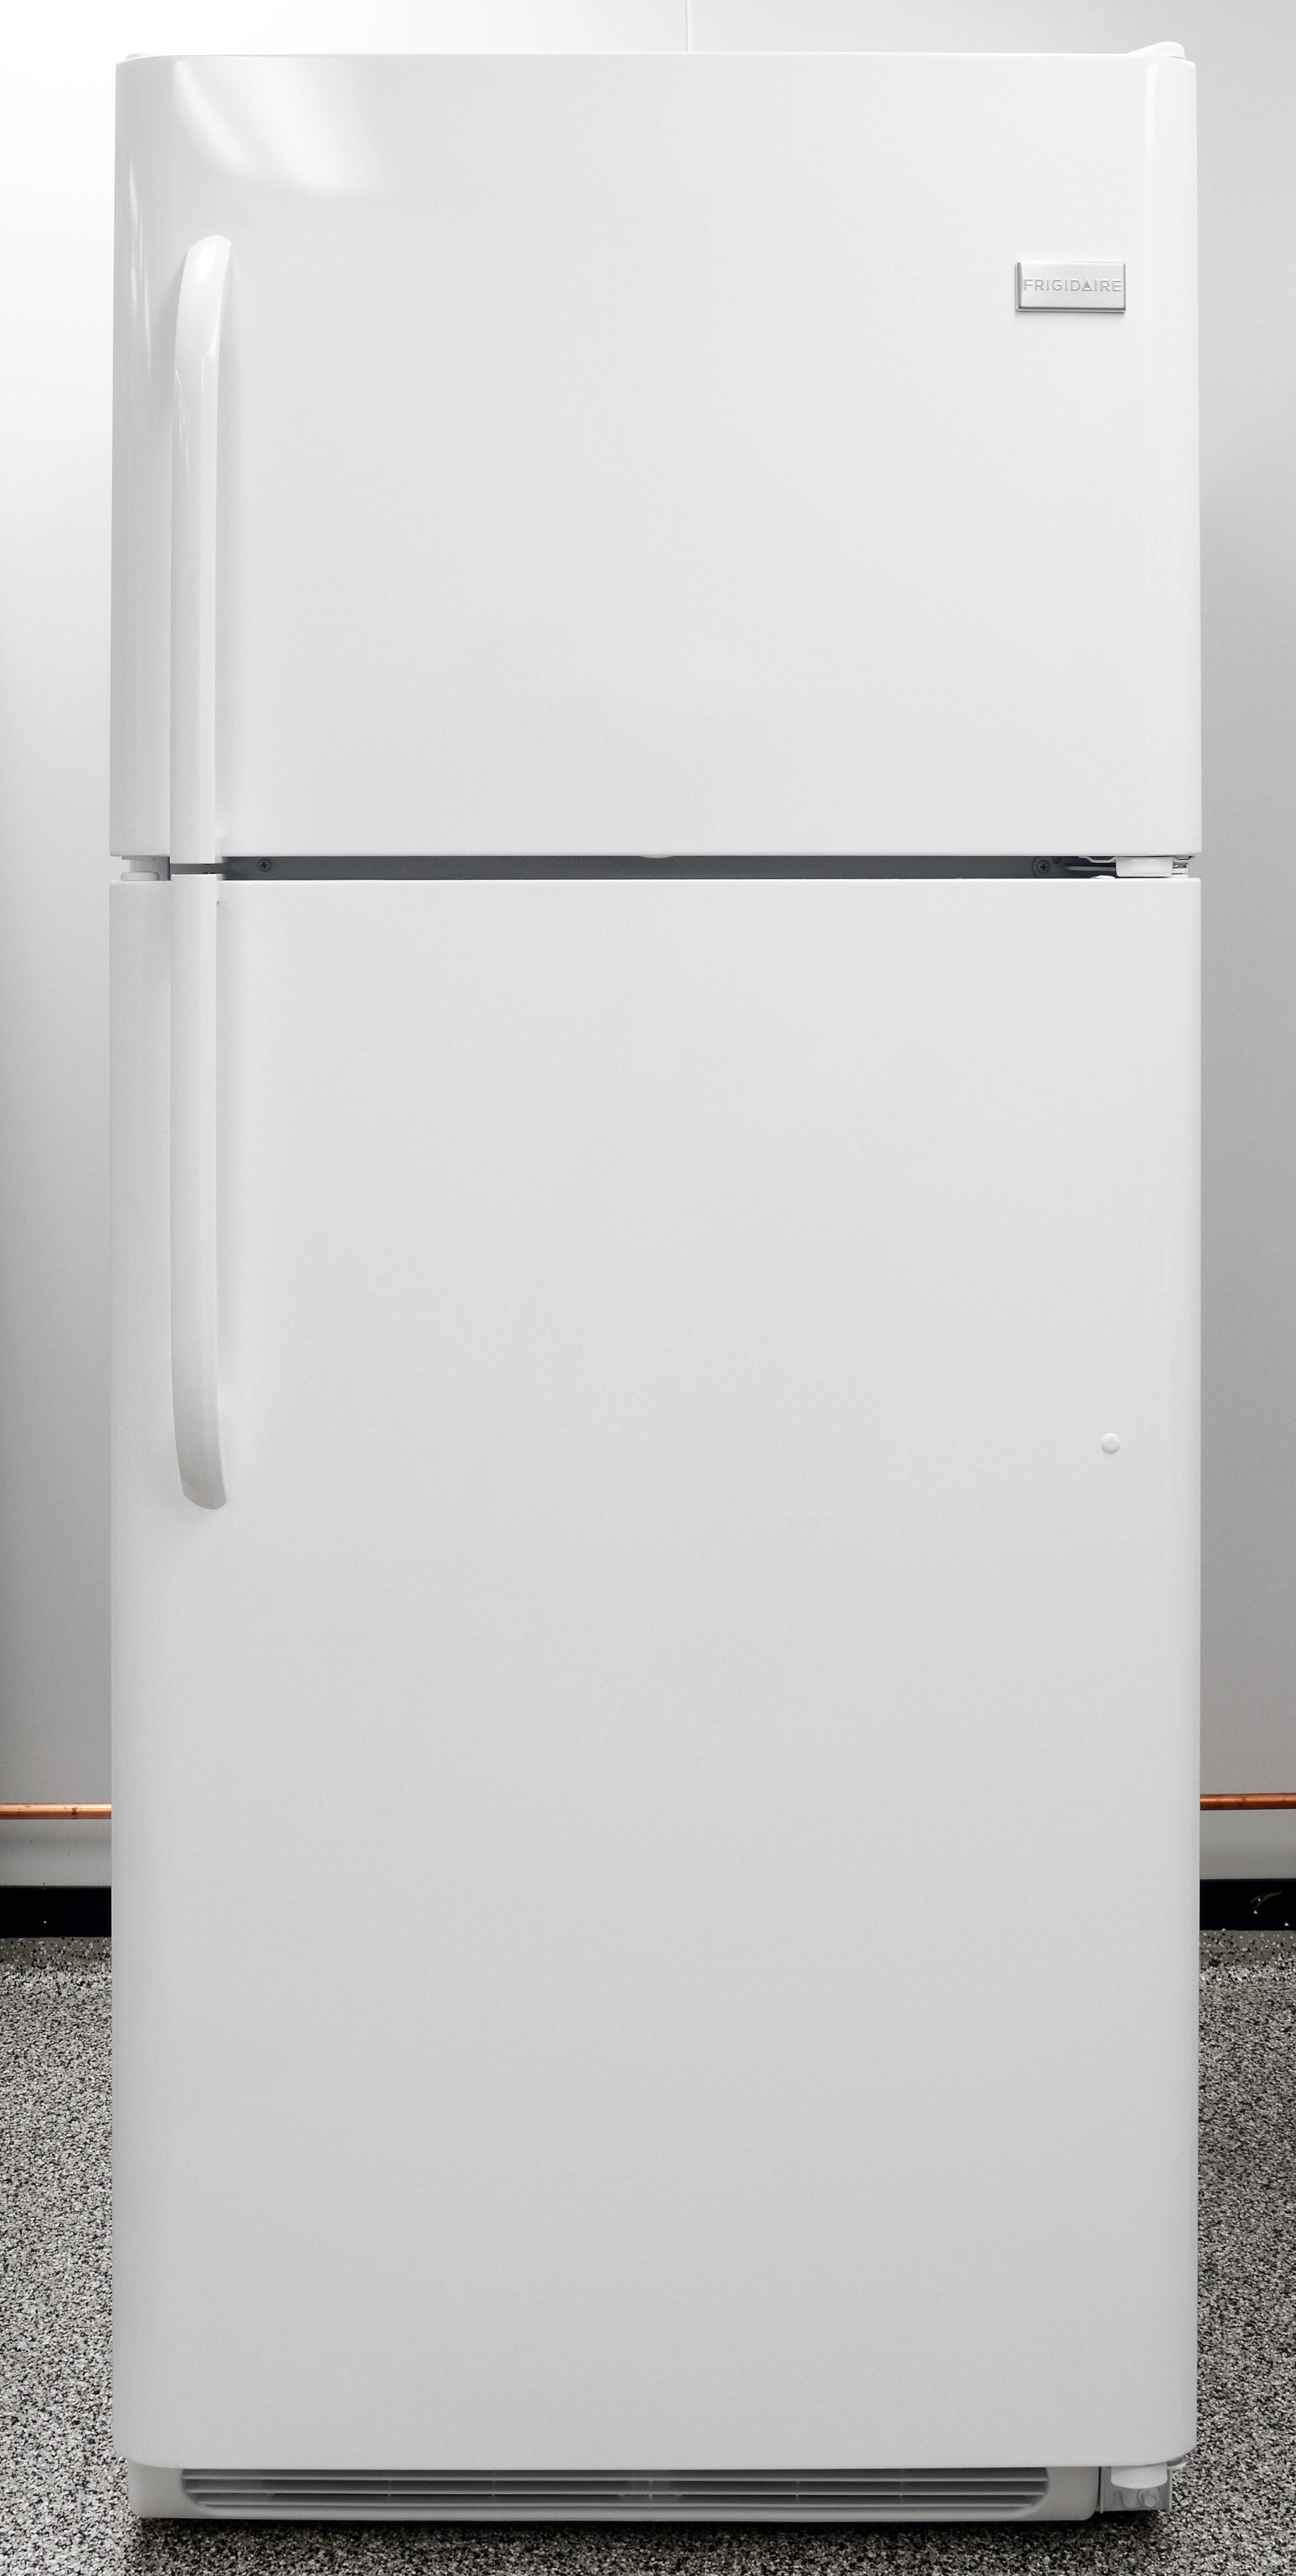 The Frigidaire FFHT2131QP's smooth white finish is also available in black, metal, or stainless.